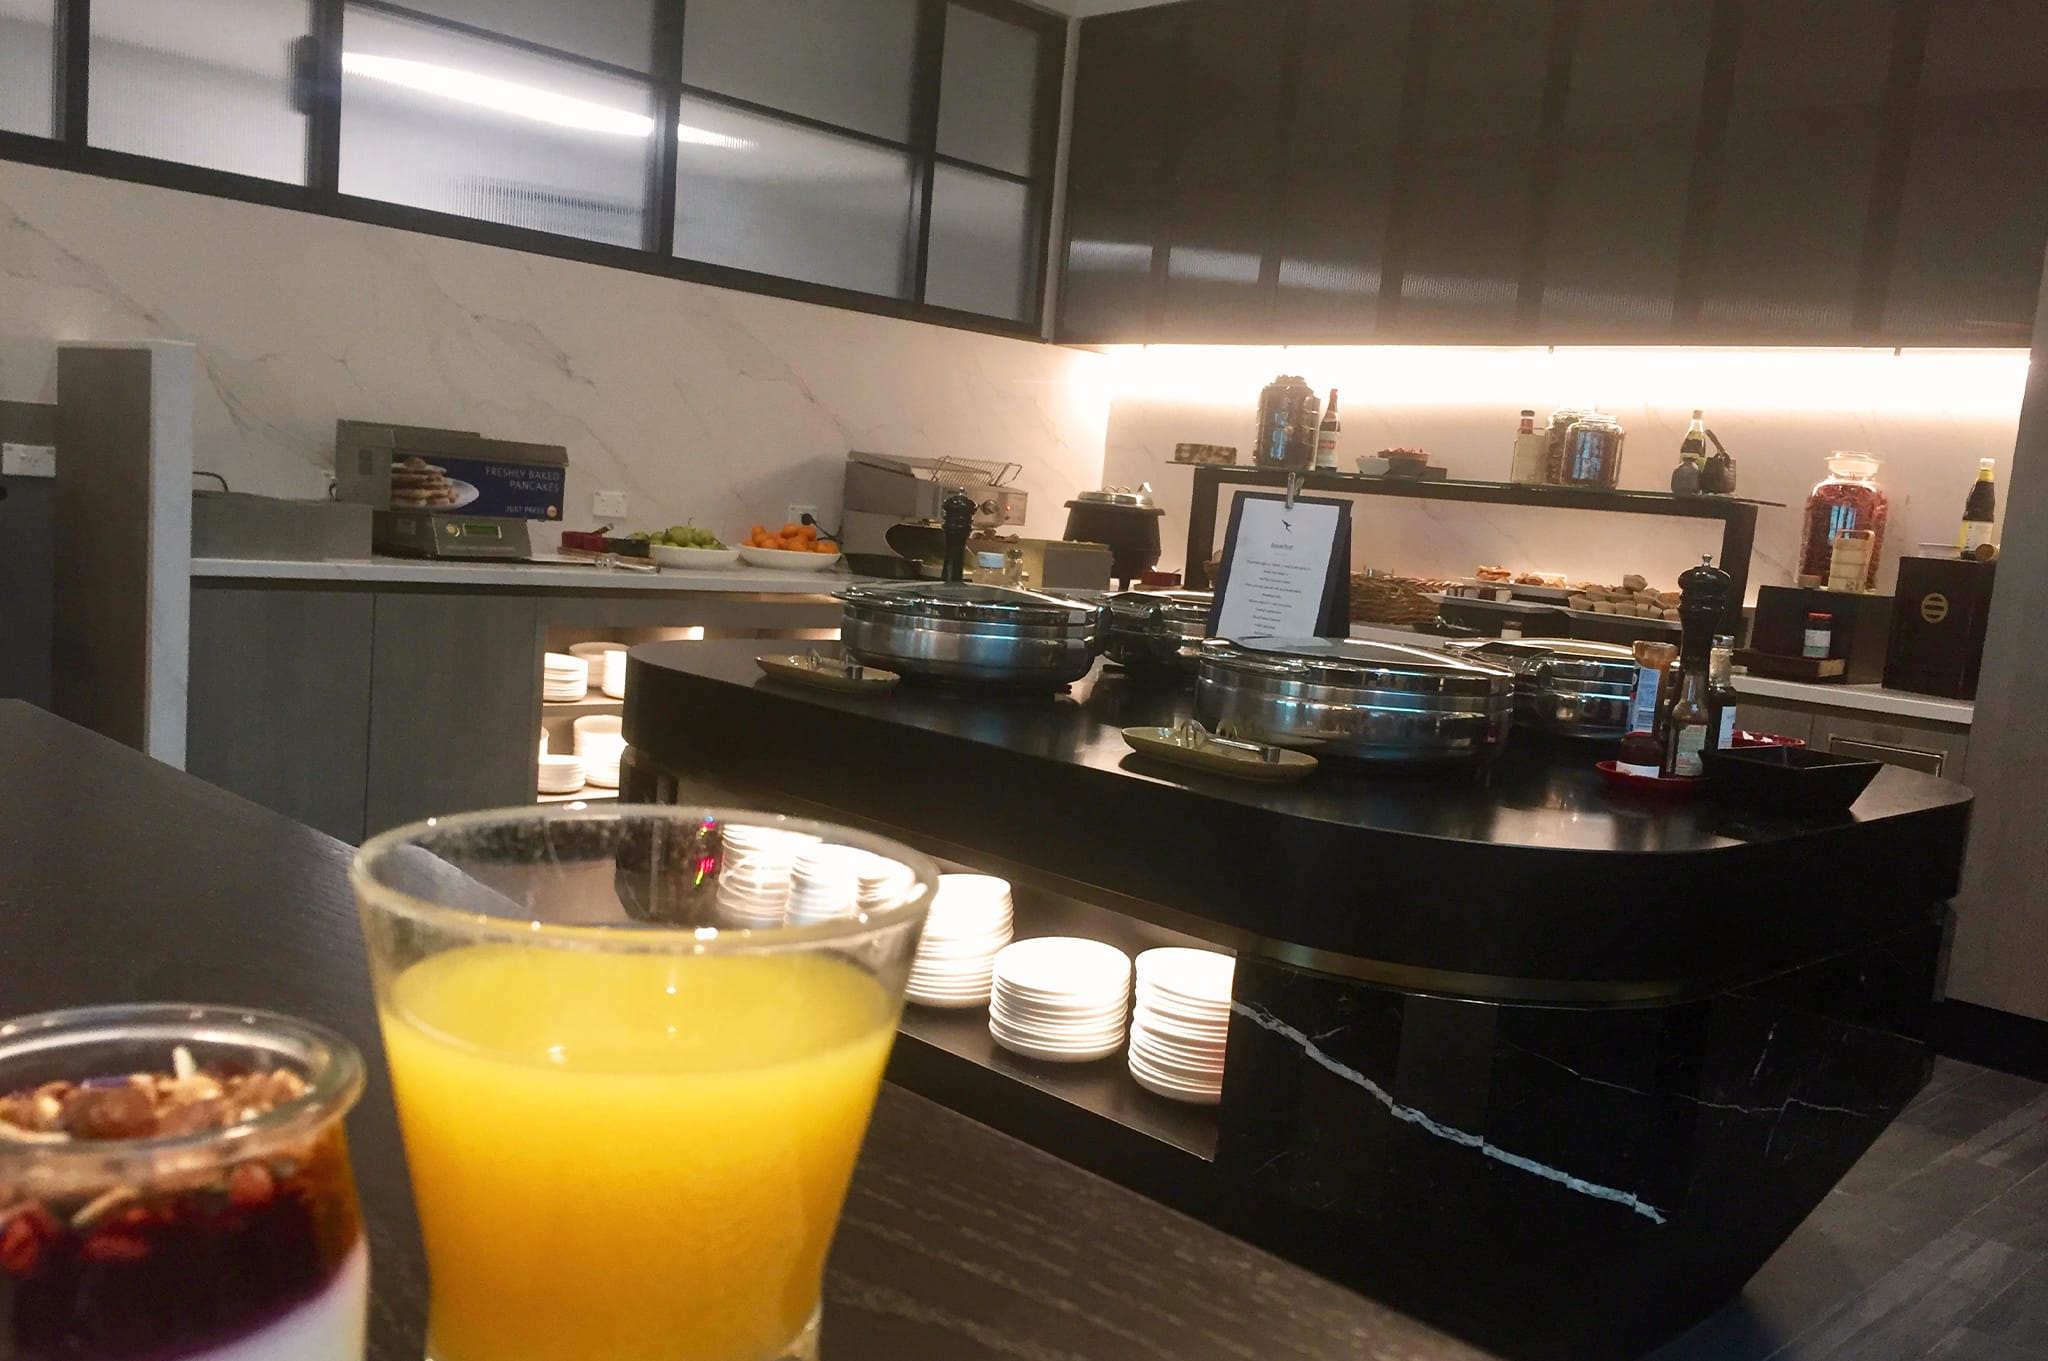 Qantas Business Class Lounge Melbourne Breakfast